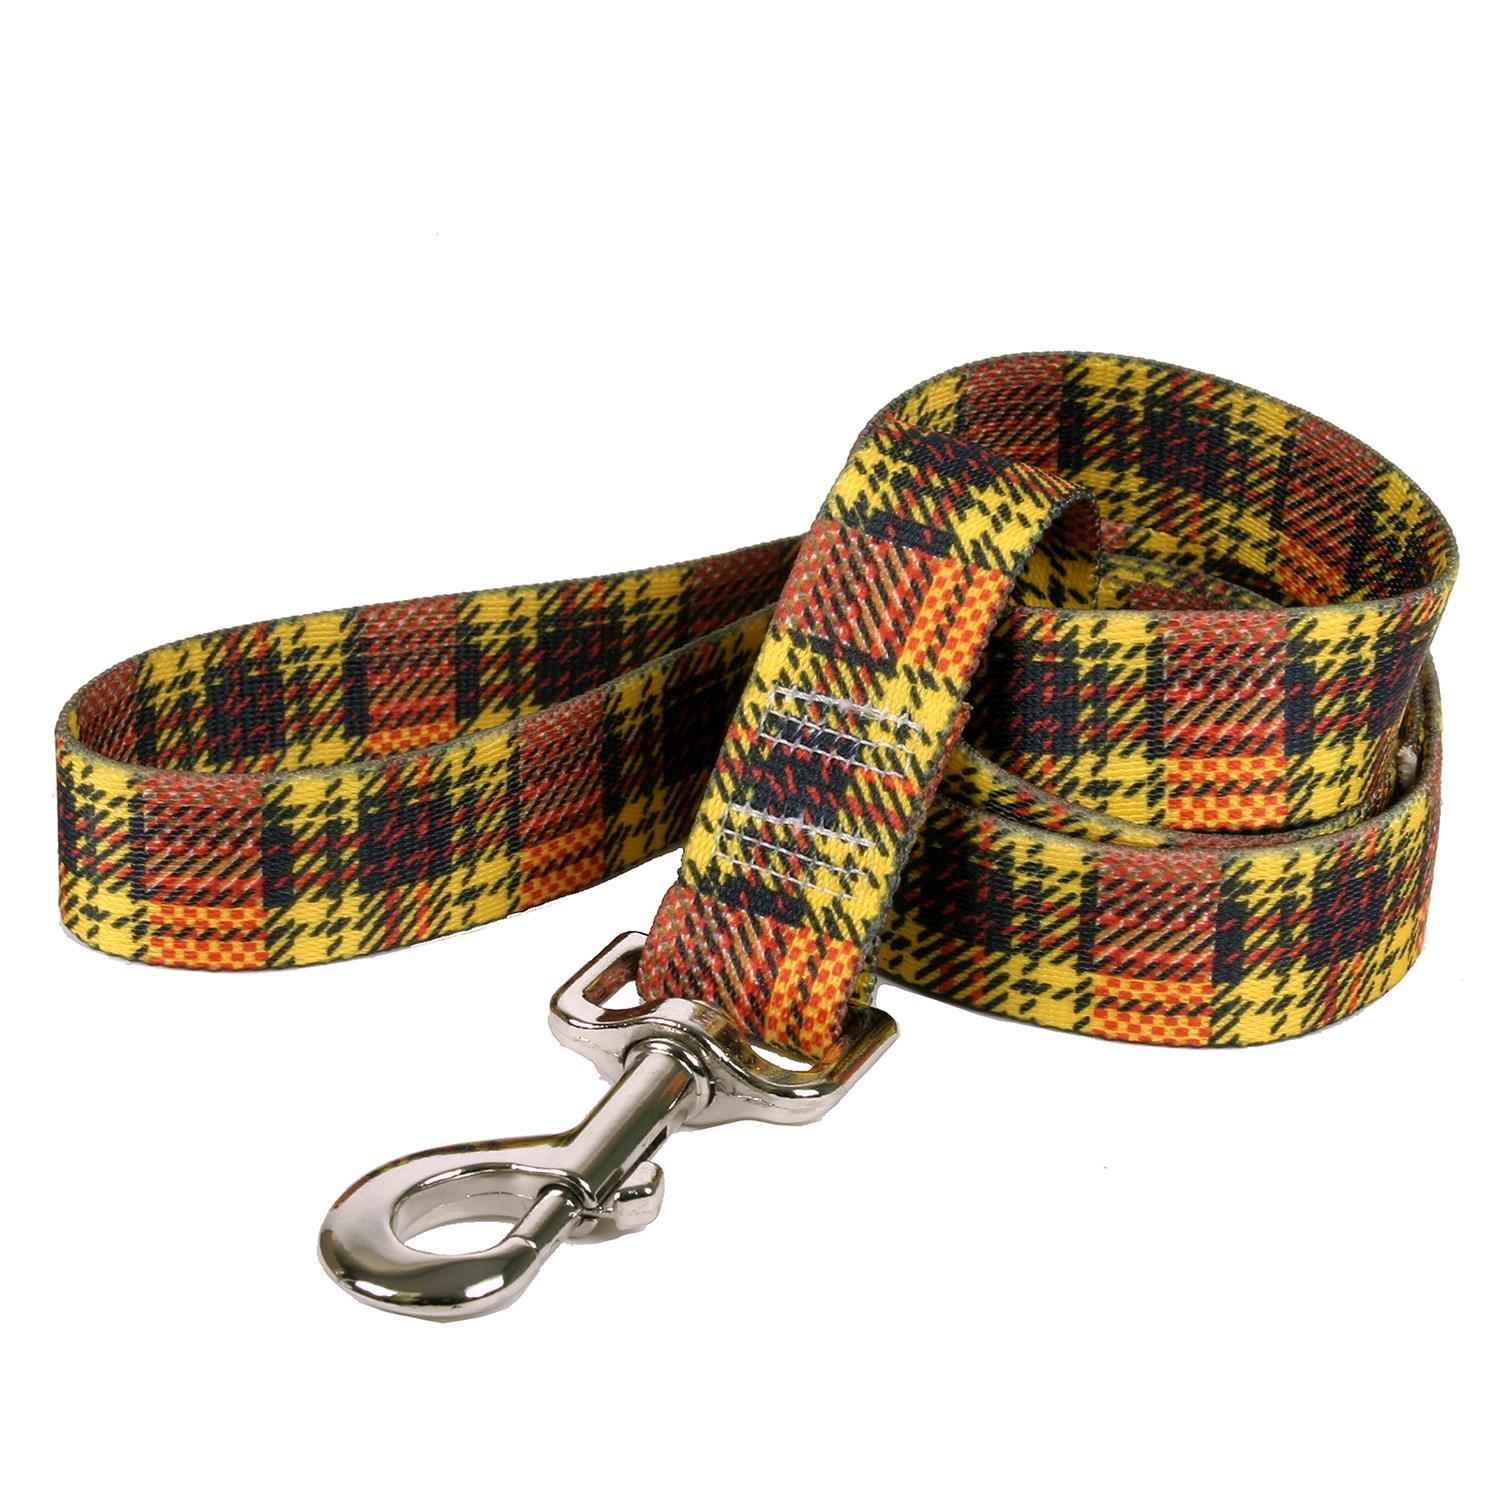 Highland Plaid Dog Leash by Yellow Dog - Yellow